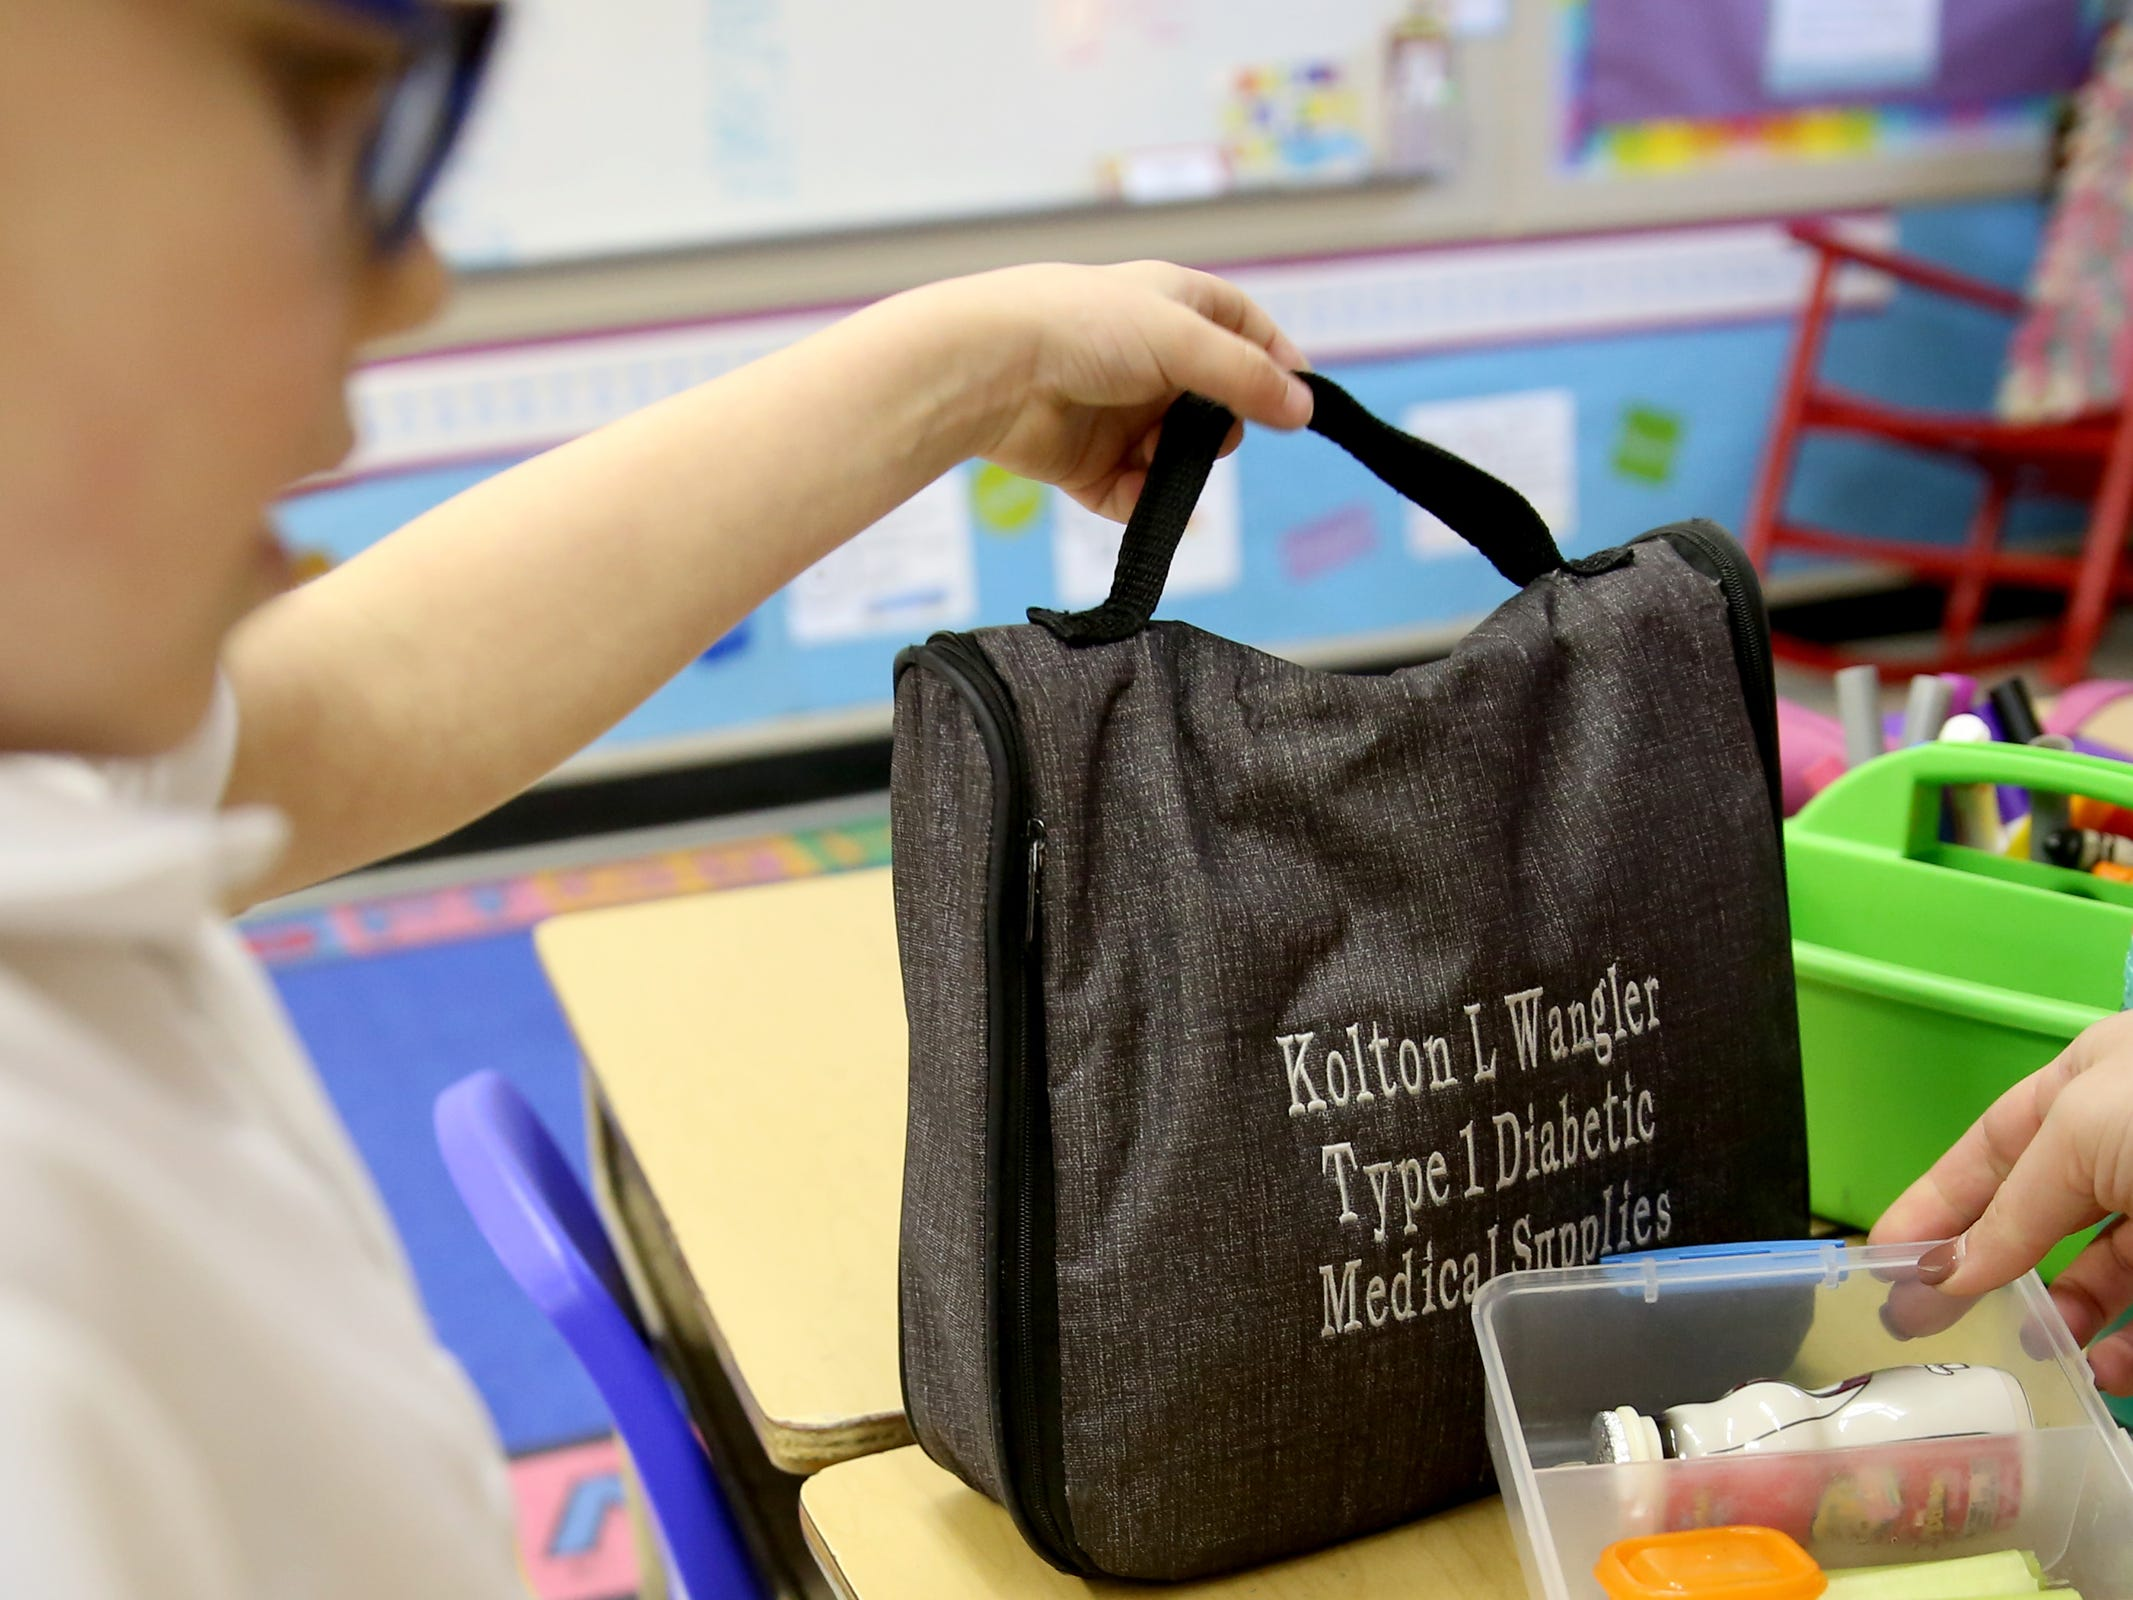 Jessica Wangler and her son, Kolton Wangler, 6, who has Type 1 diabetes, grab his bag of medical supplies as she monitors his insulin dosage during his lunch break in his kindergarten classroom at St. Joseph Catholic School in Salem on Tuesday, Feb. 12, 2019. Wangler works in Sen. Peter Courtney's office, and when he heard her story he introduced a bill to allow people to get emergency insulin from the pharmacy.